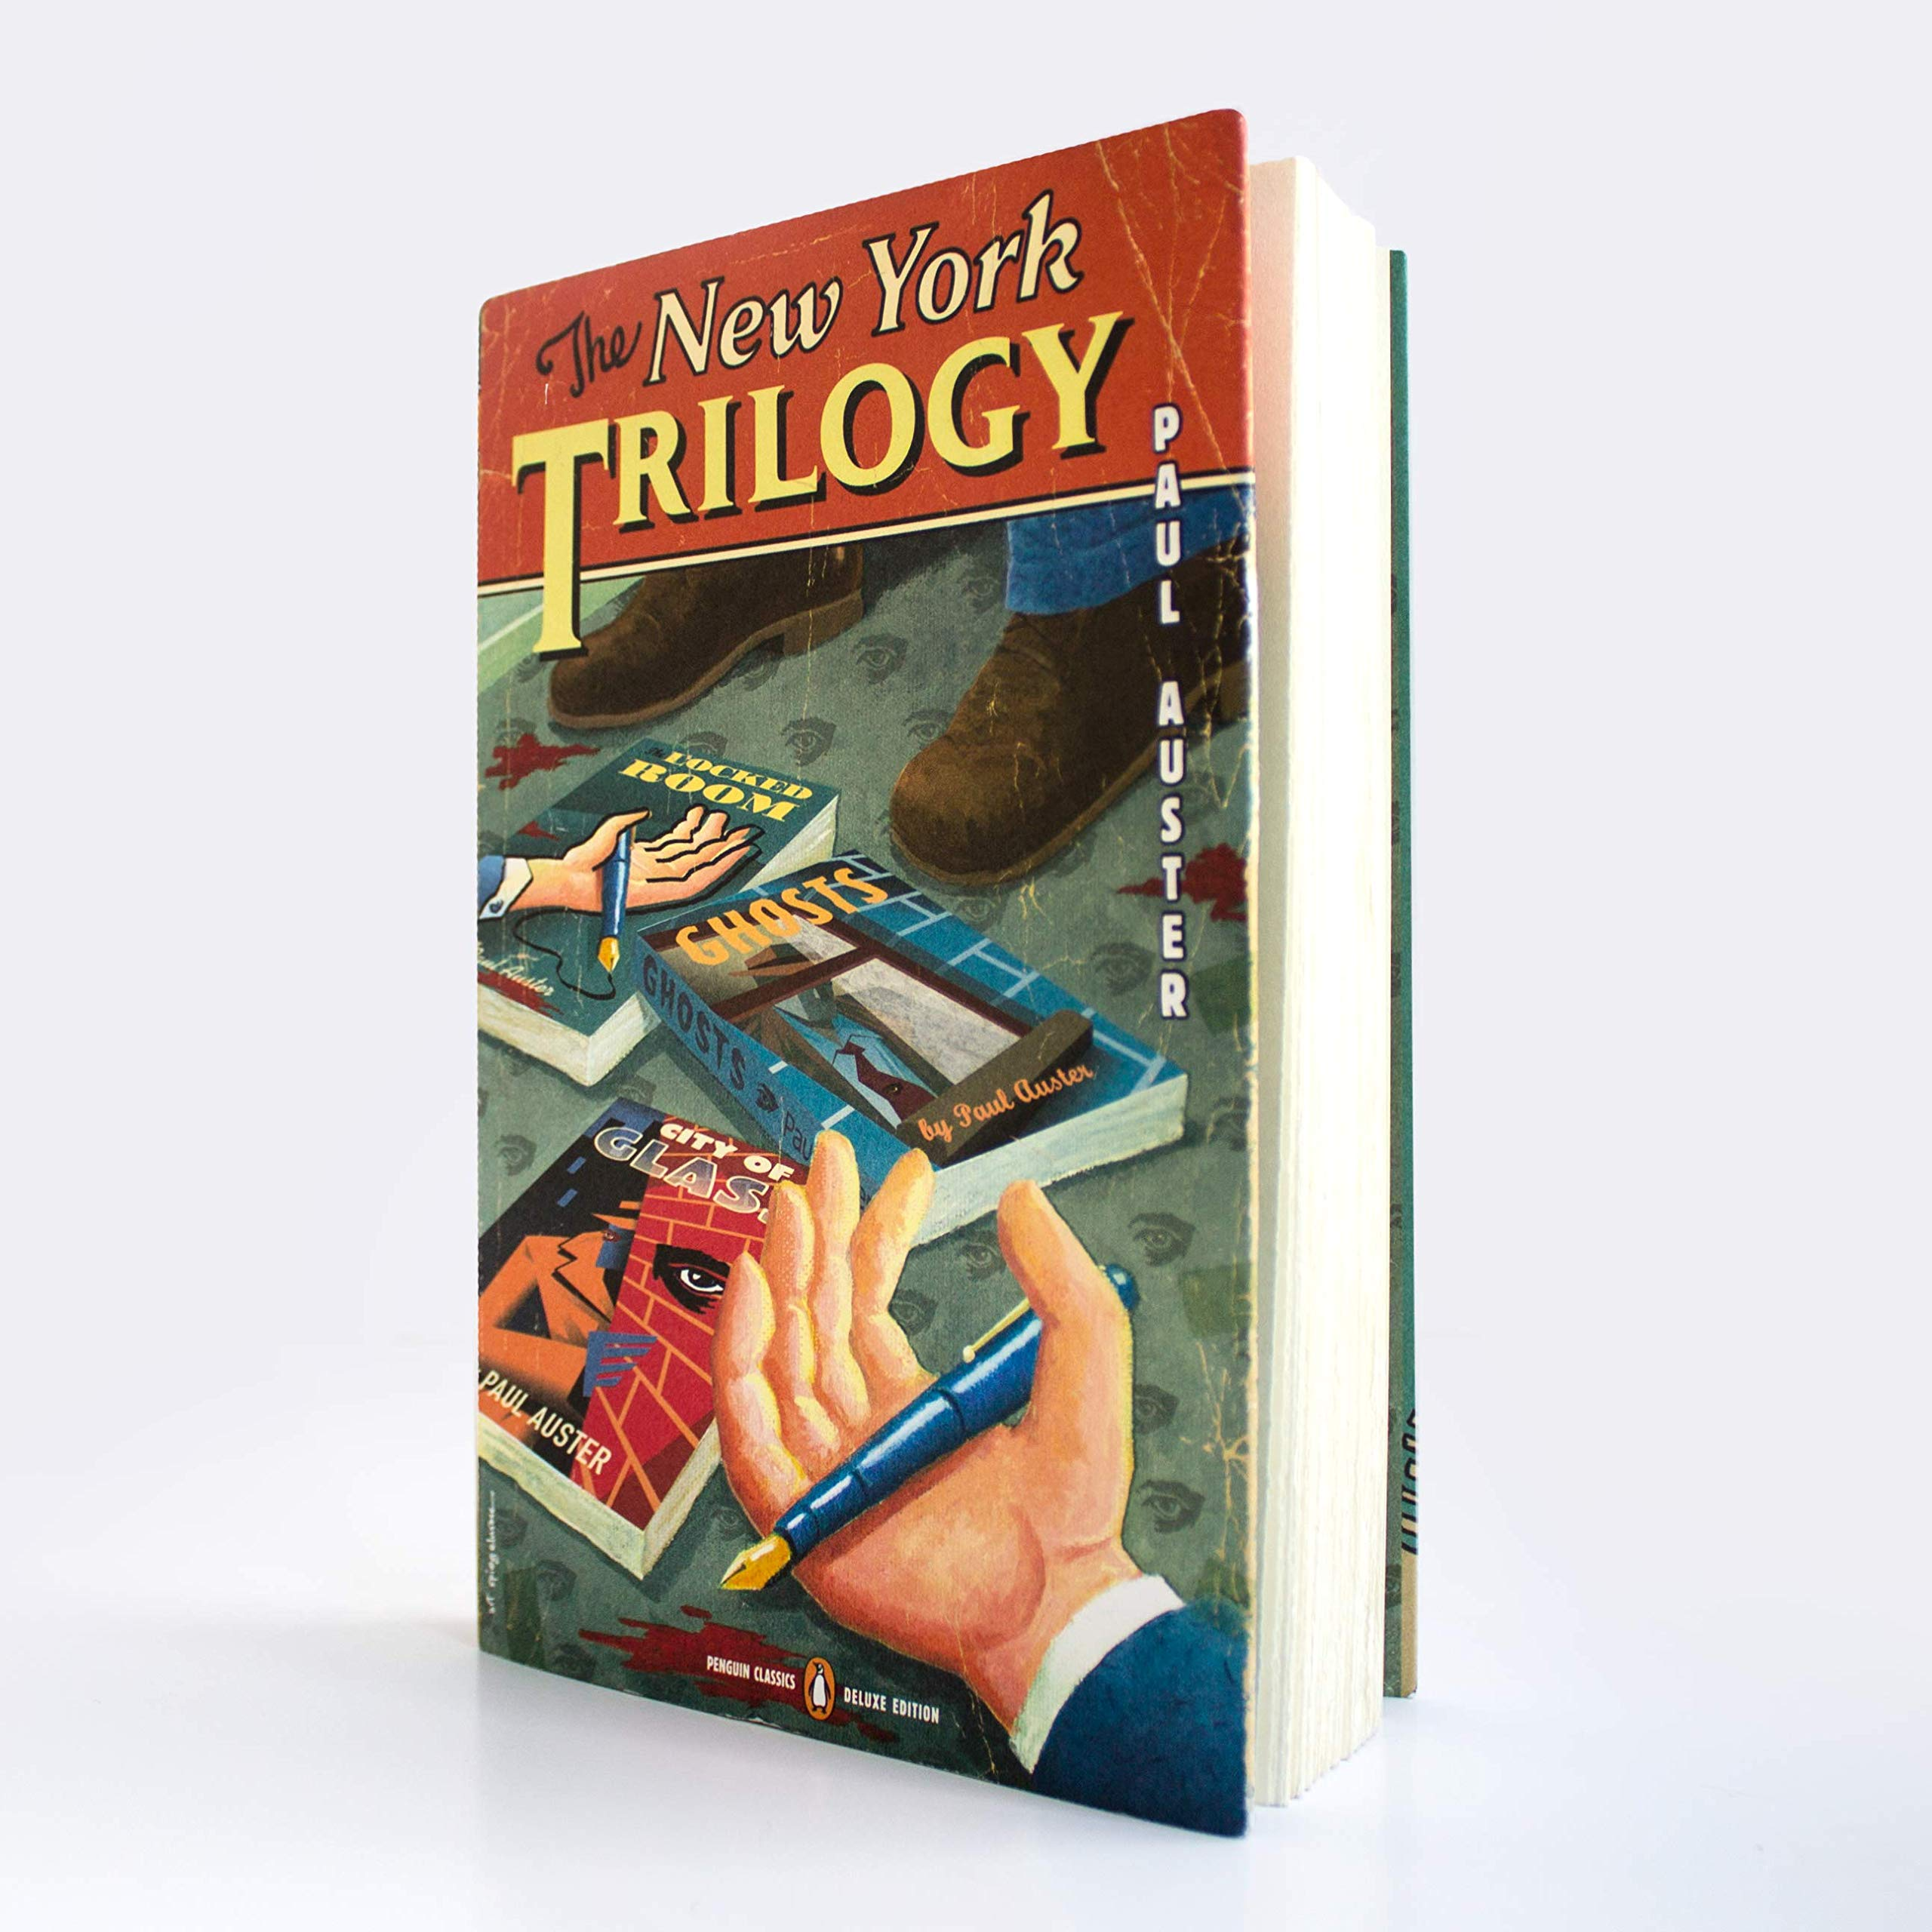 The New York Trilogy: Penguin Classics Deluxe Edition